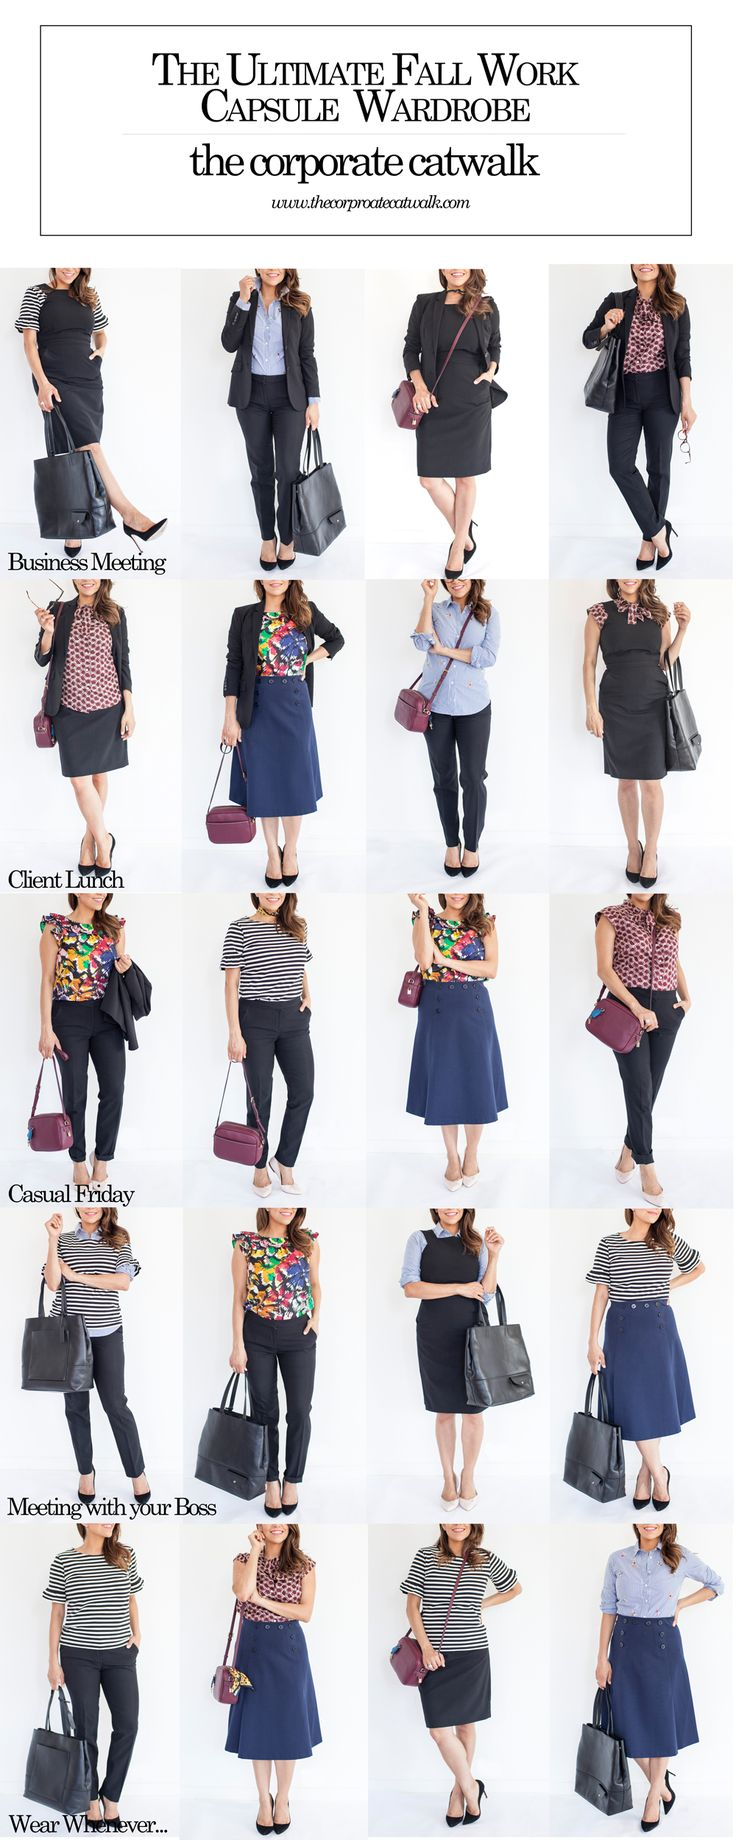 The Ultimate Fall Work Capsule Wardrobe for very Corporate Woman. More on Corporate Catwalk | Black Trousers, black tote, black dress, crossbody, printed blouse, stripes for work, wearing floral at the office work outfit ideas, what to wear to work in fall, winter, spring. Corporate Catwalk.